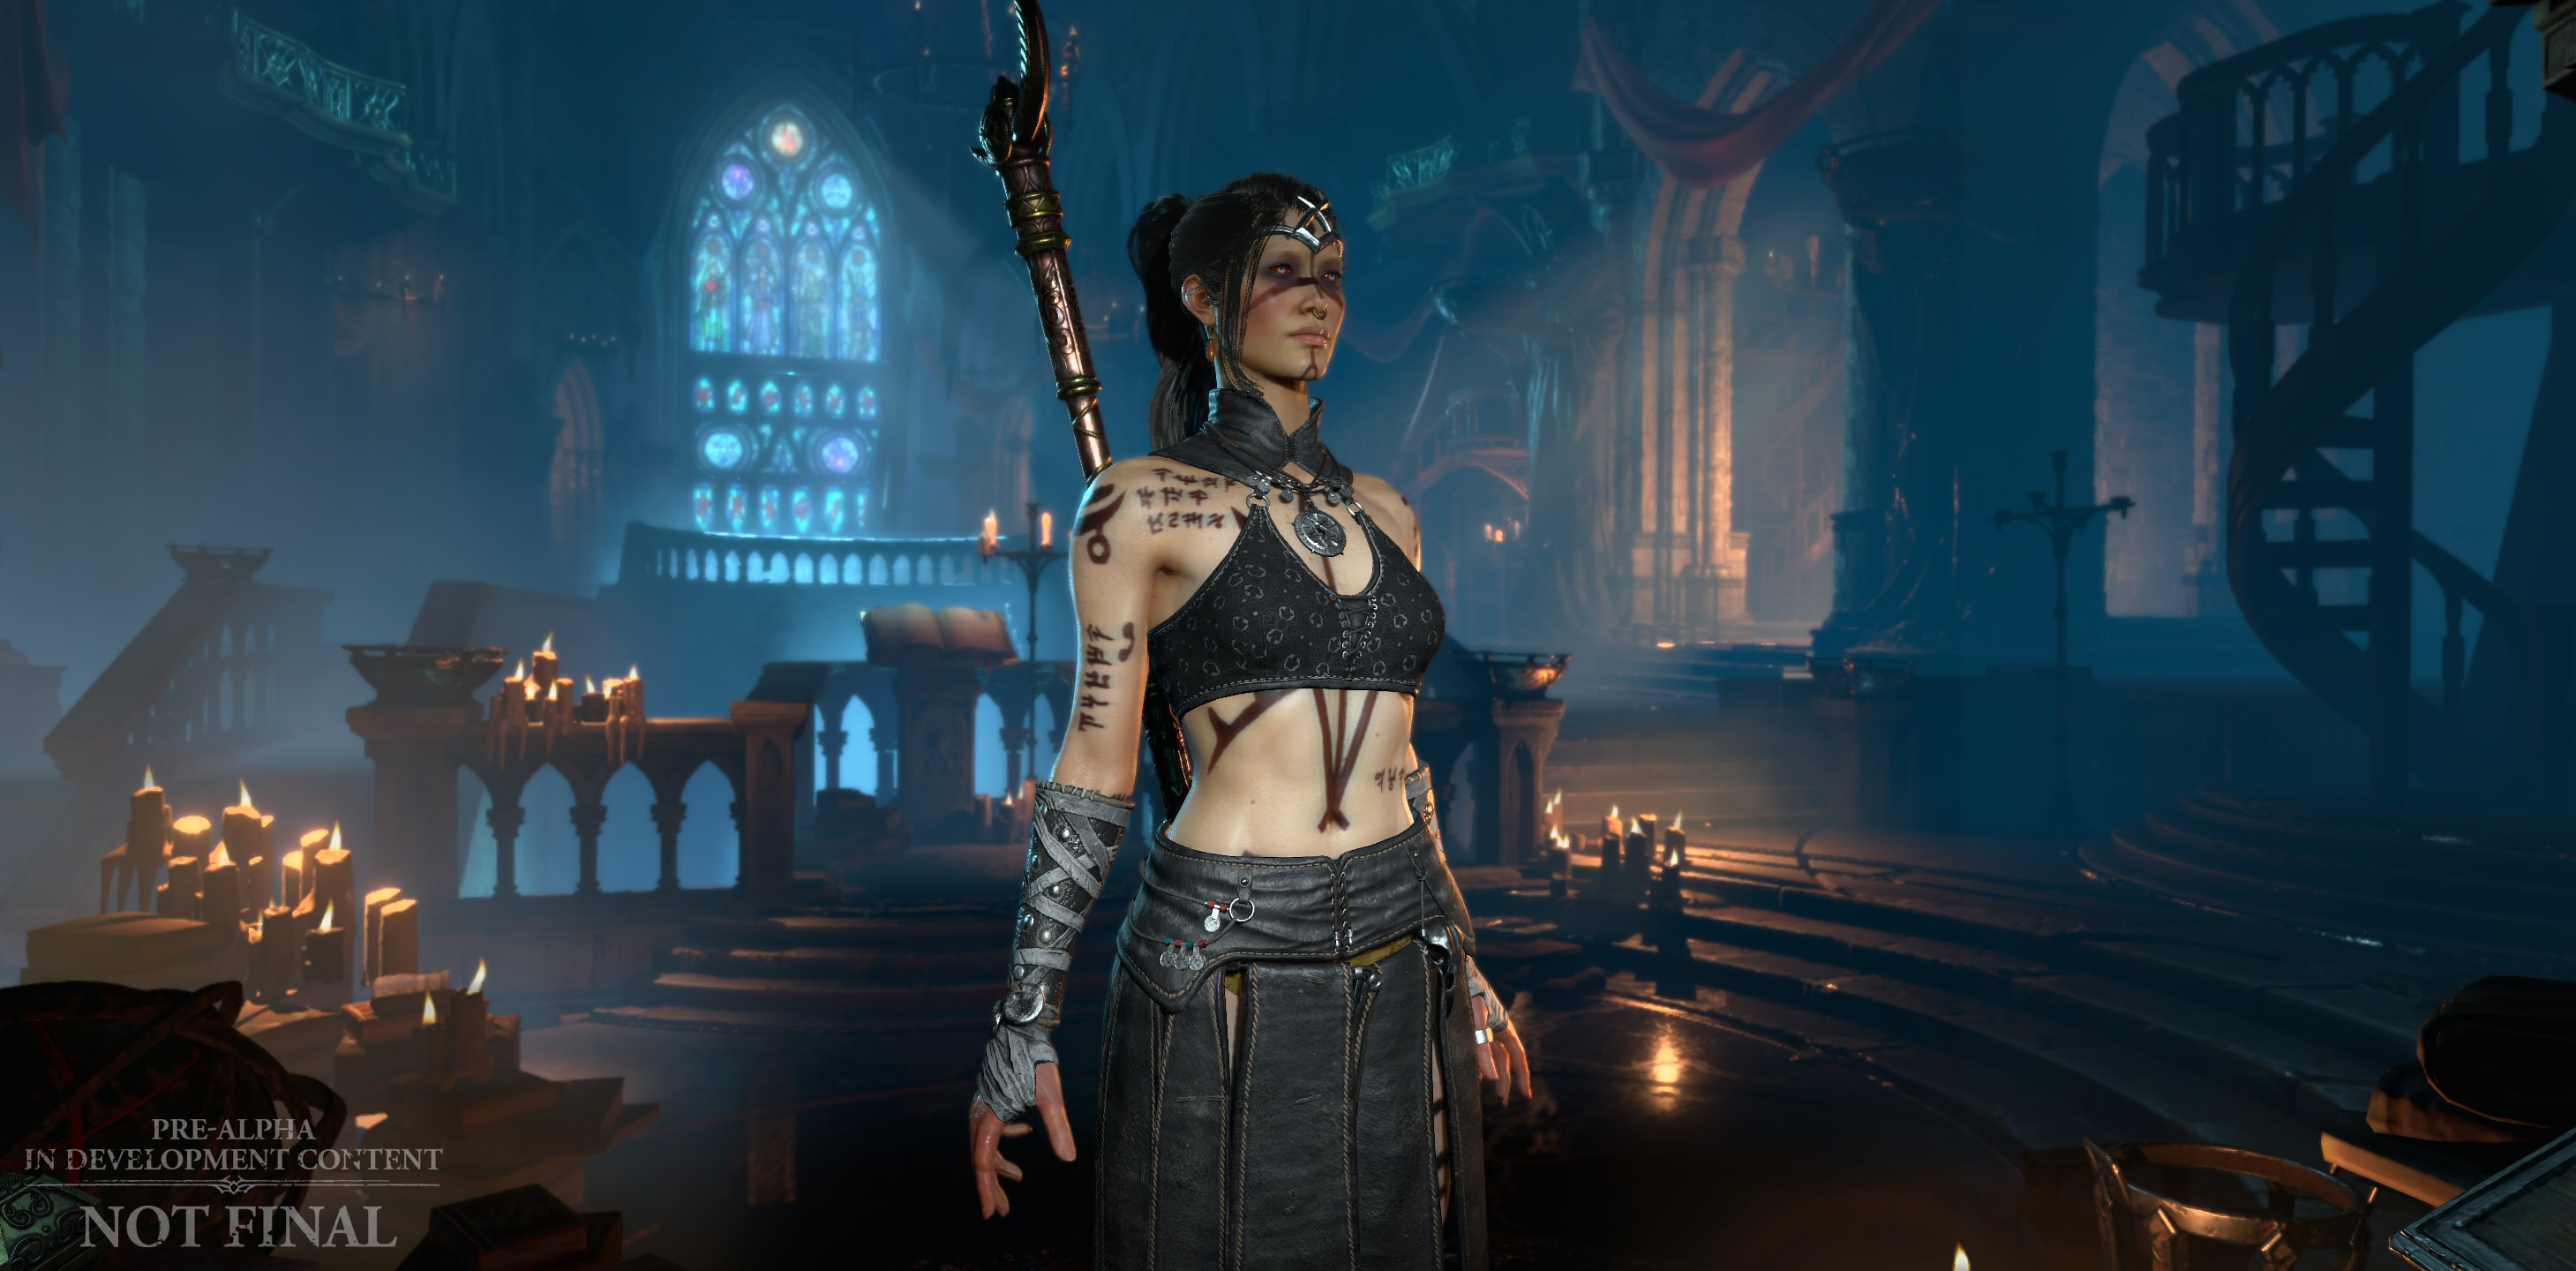 Diablo 4: You can customize your character in such detail